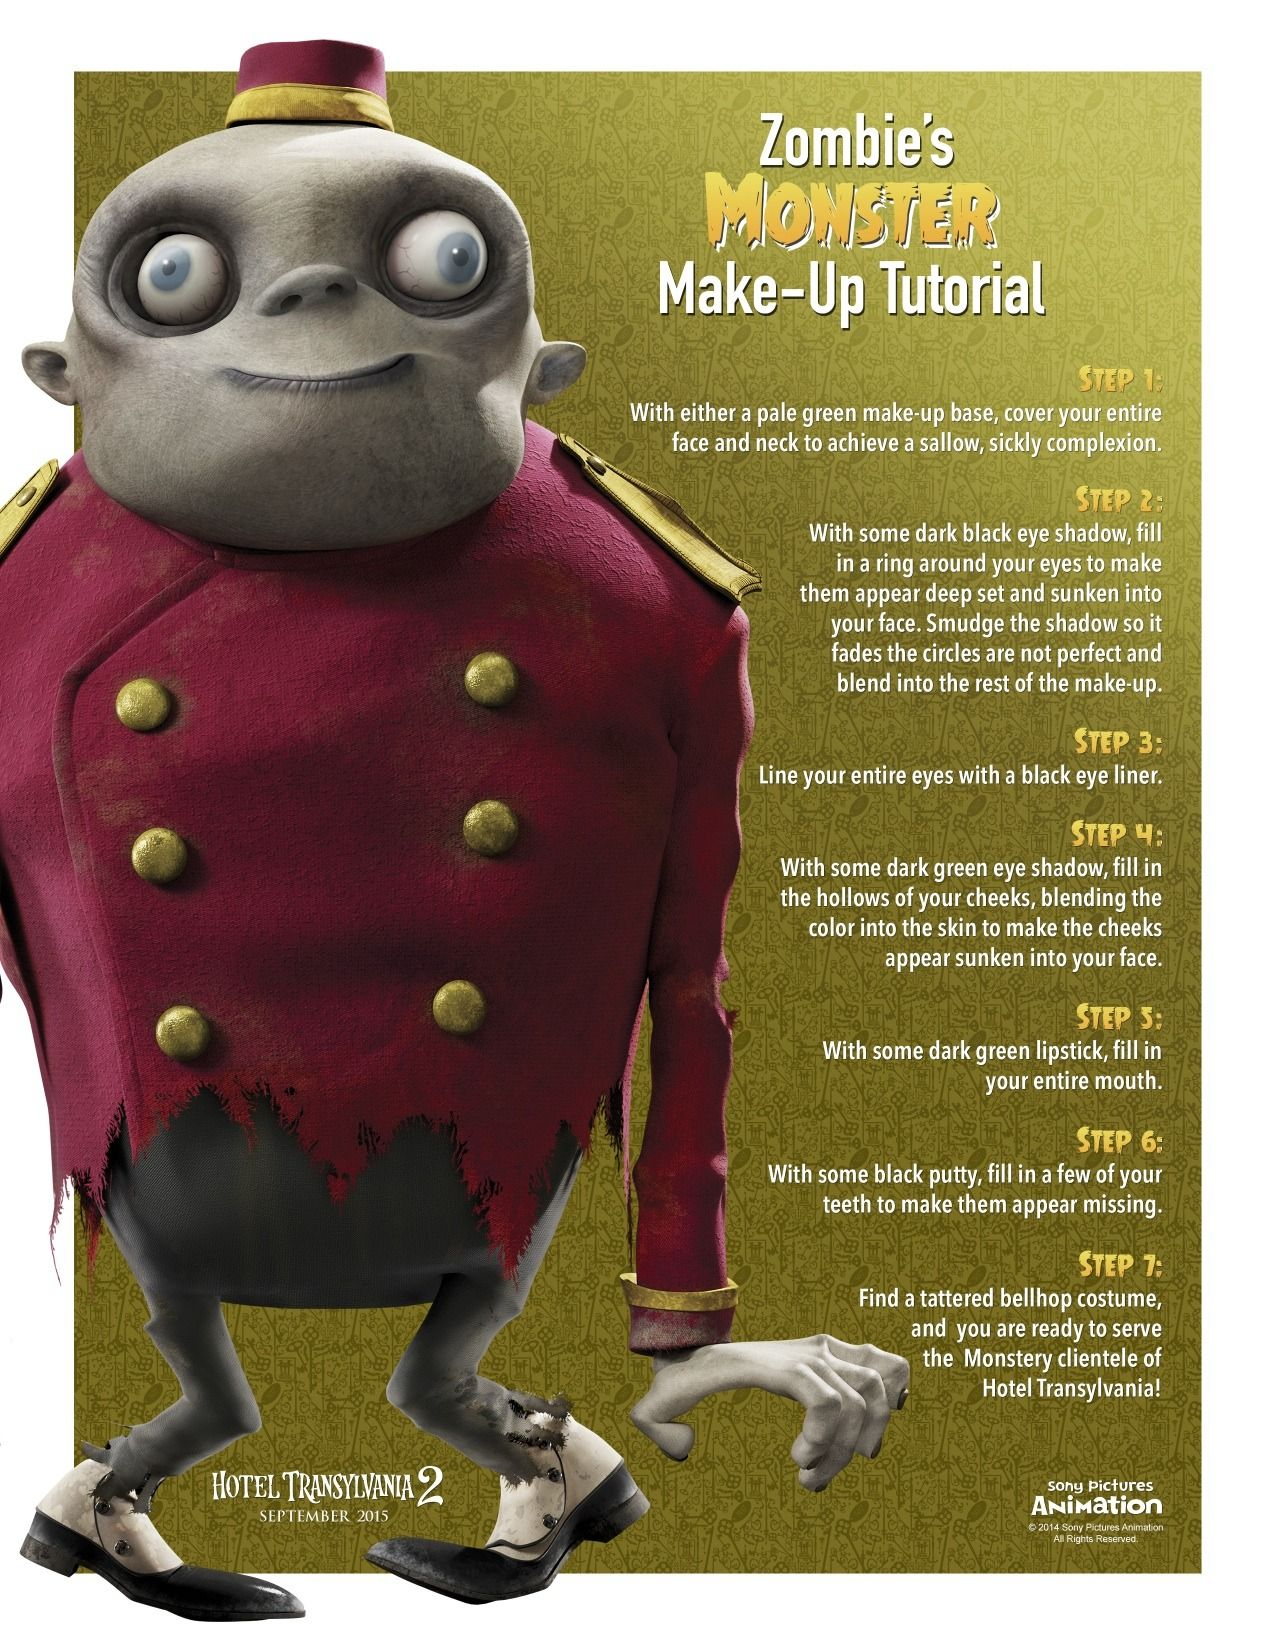 Pin By Home Owen On Character Design Hotel Transylvania Hotel